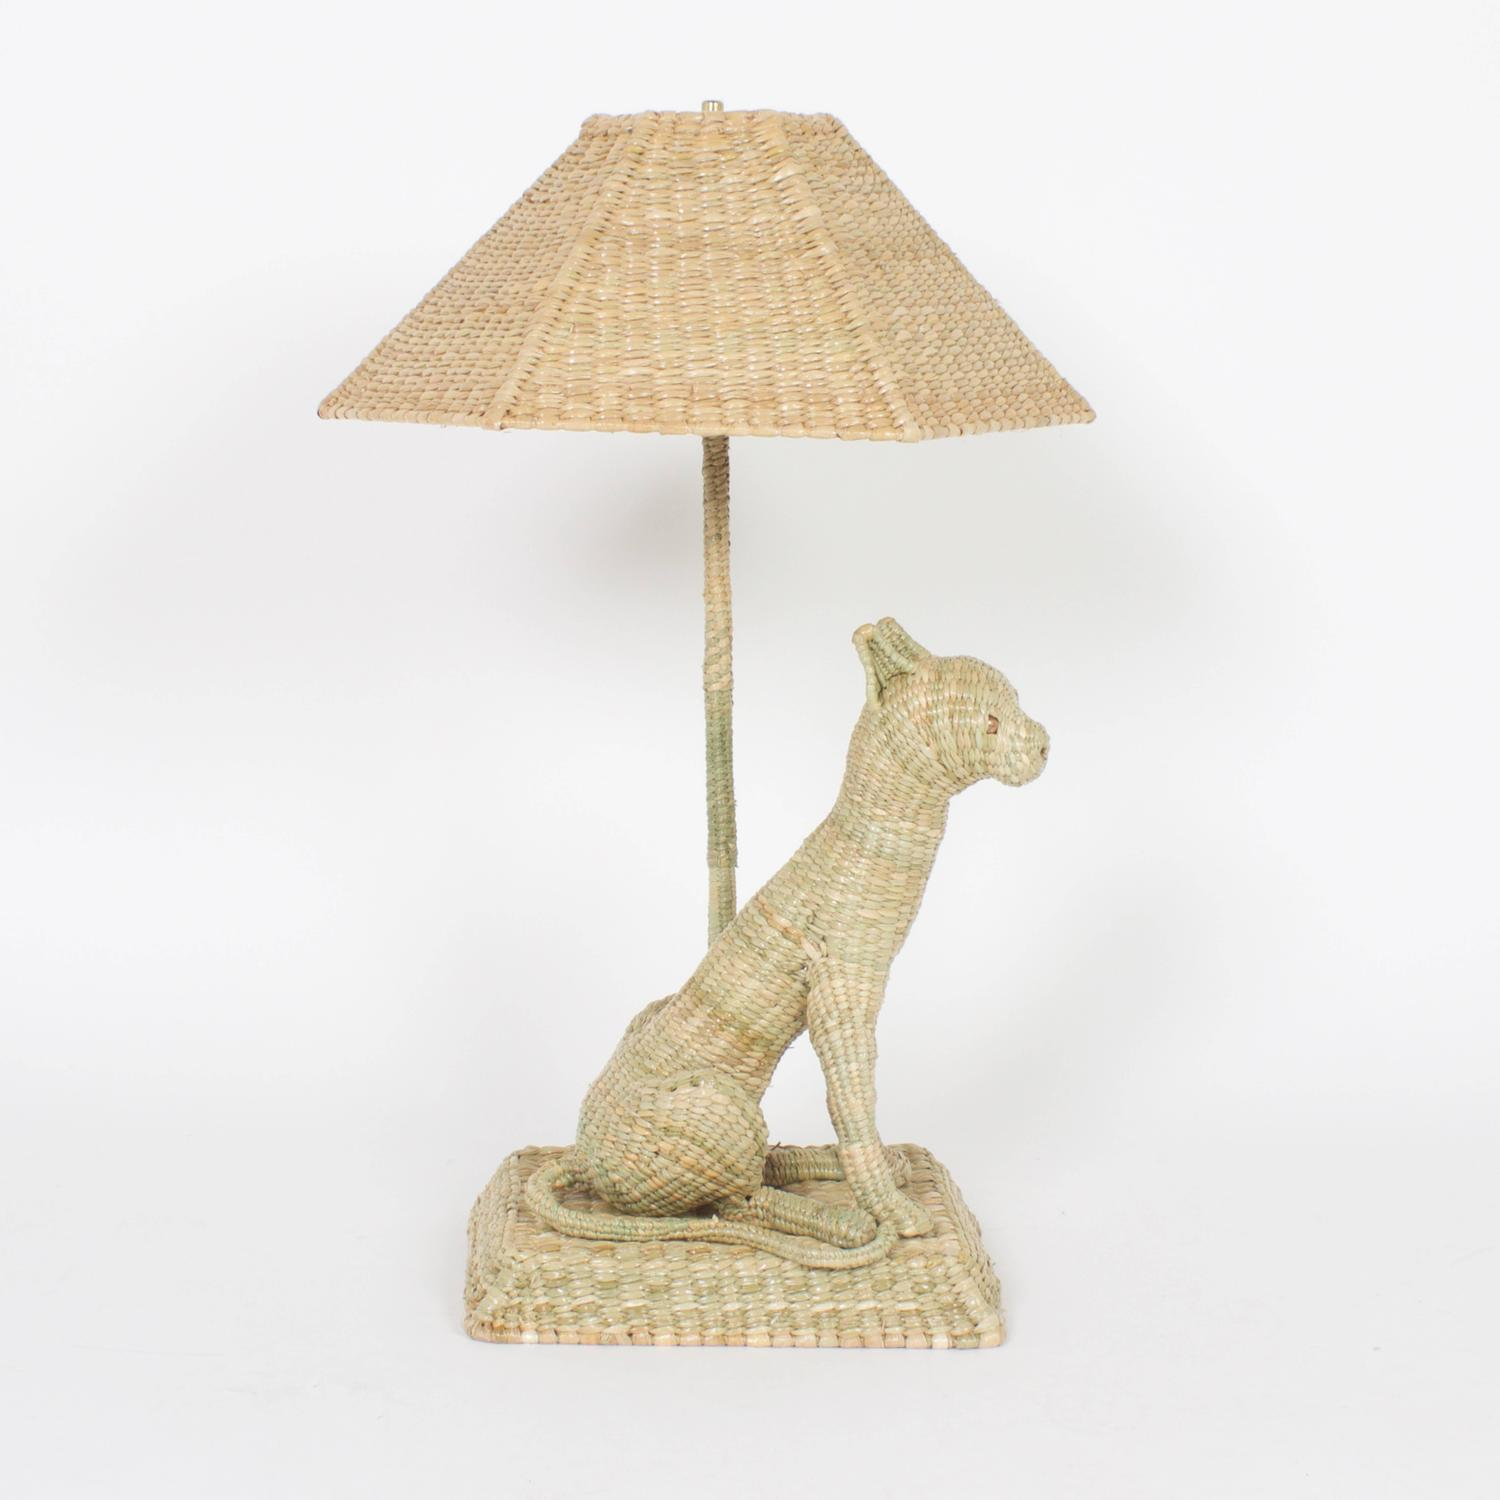 Fun and folky wicker cat table lamps by mario torres for for Funny lamps for sale